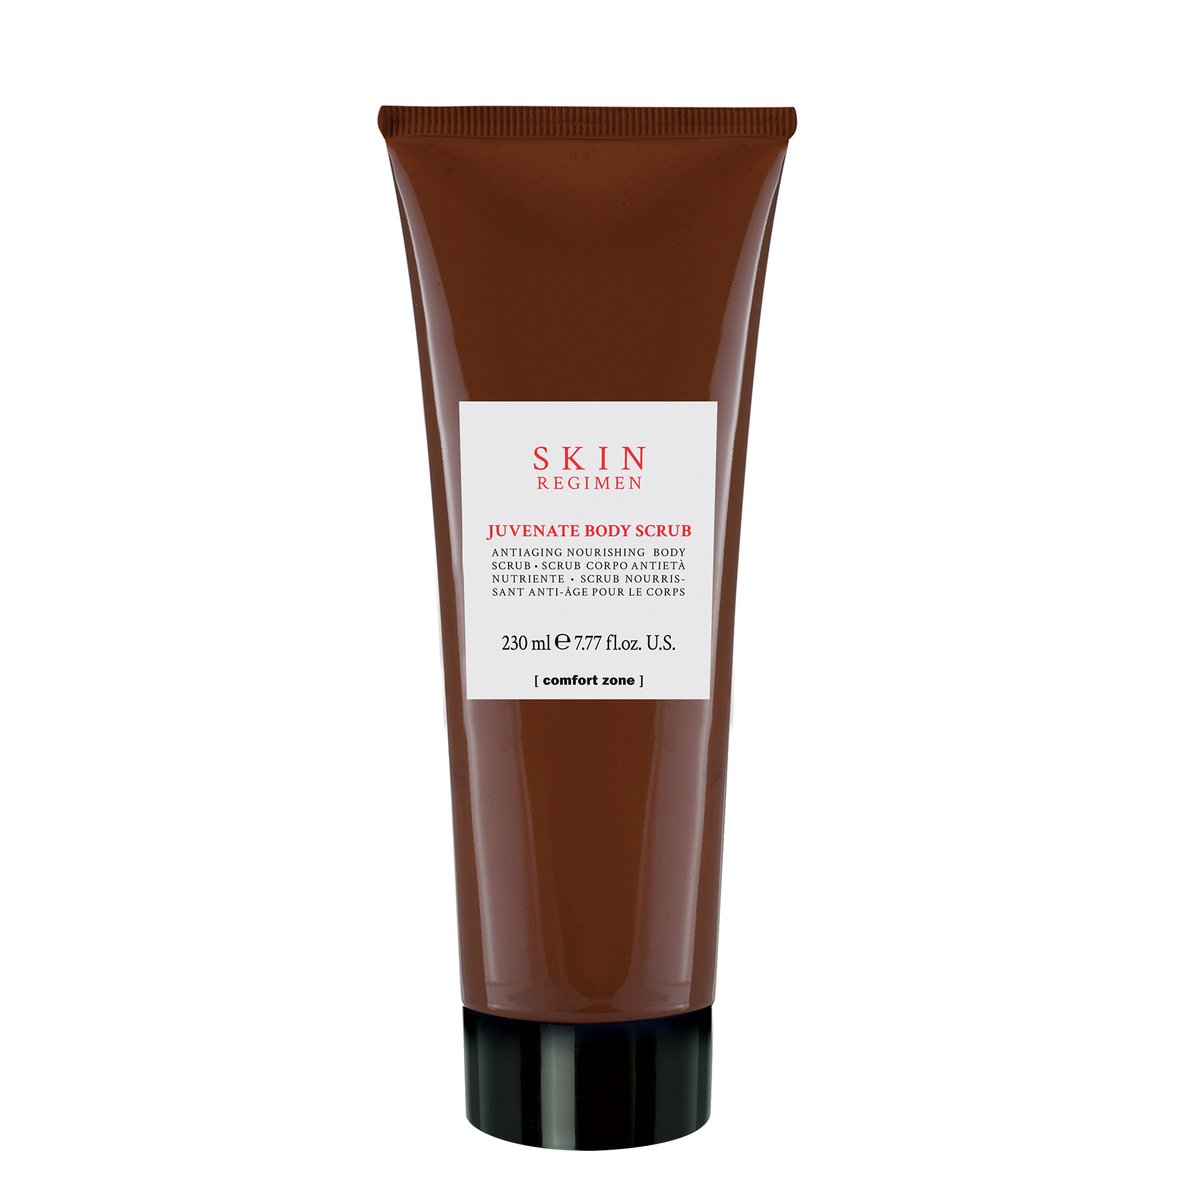 10720-skin-regimen-body-scrub-230-ml-high.jpg__1200x1200_q85_subsampling-2_upscale